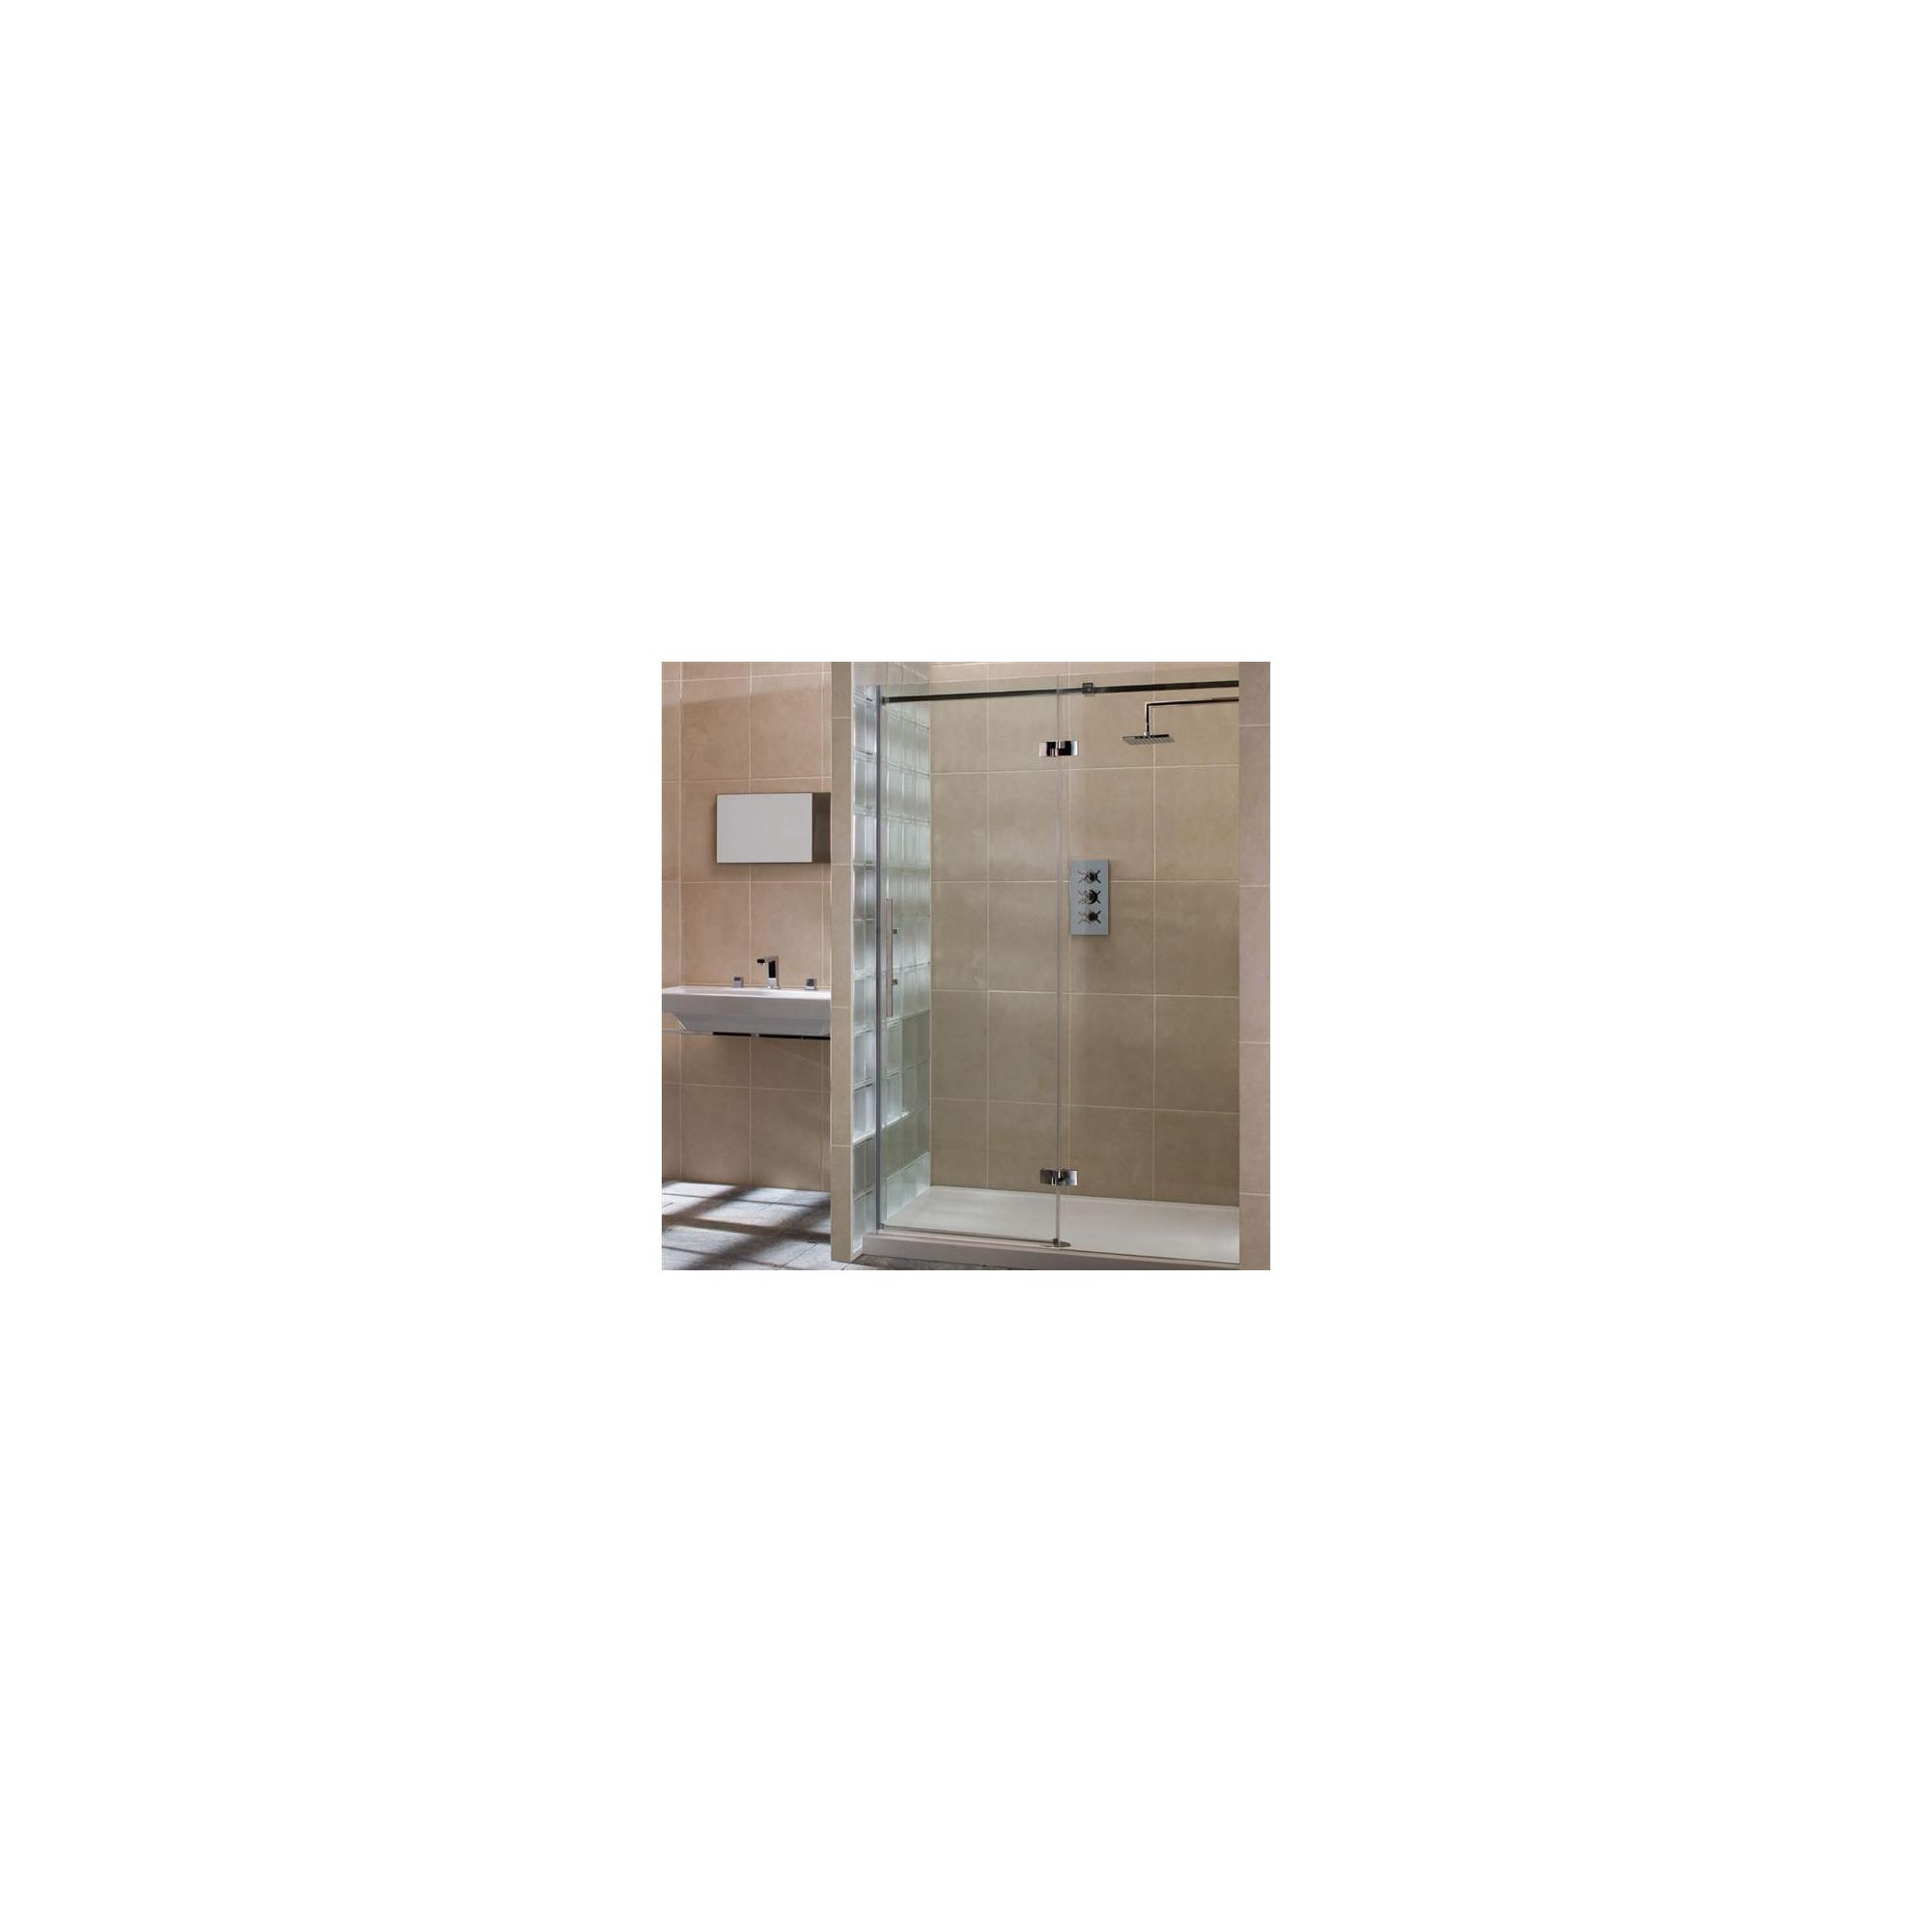 Merlyn Vivid Nine Hinged Door Alcove Shower Enclosure with Inline Panel, 1000mm x 800mm, Right Handed, Low Profile Tray, 8mm Glass at Tesco Direct